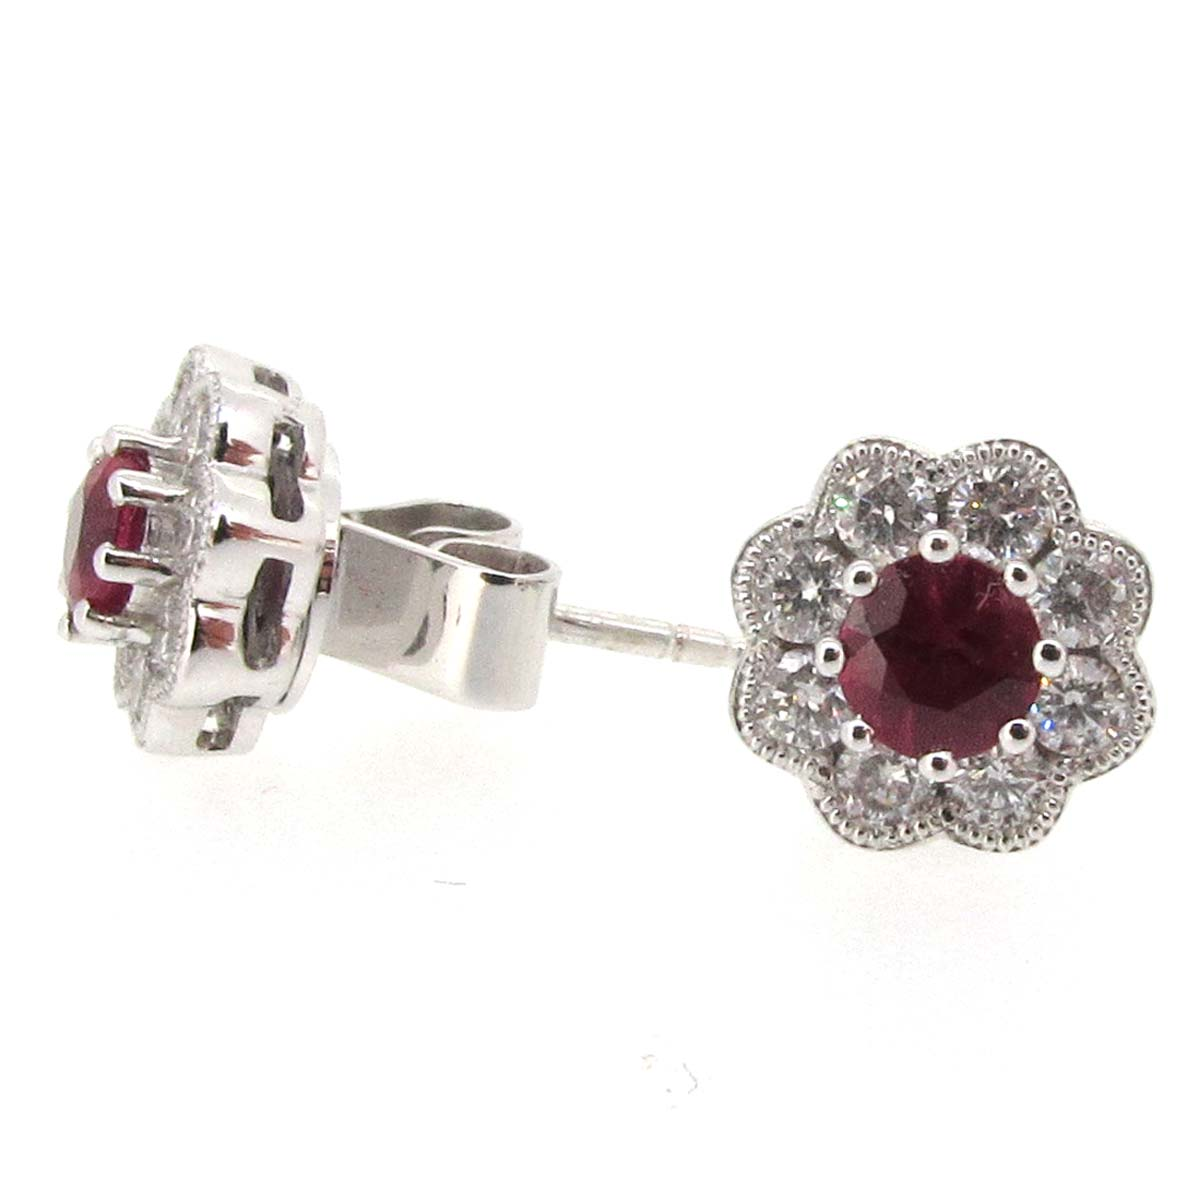 18ct white gold, ruby and diamond earrings